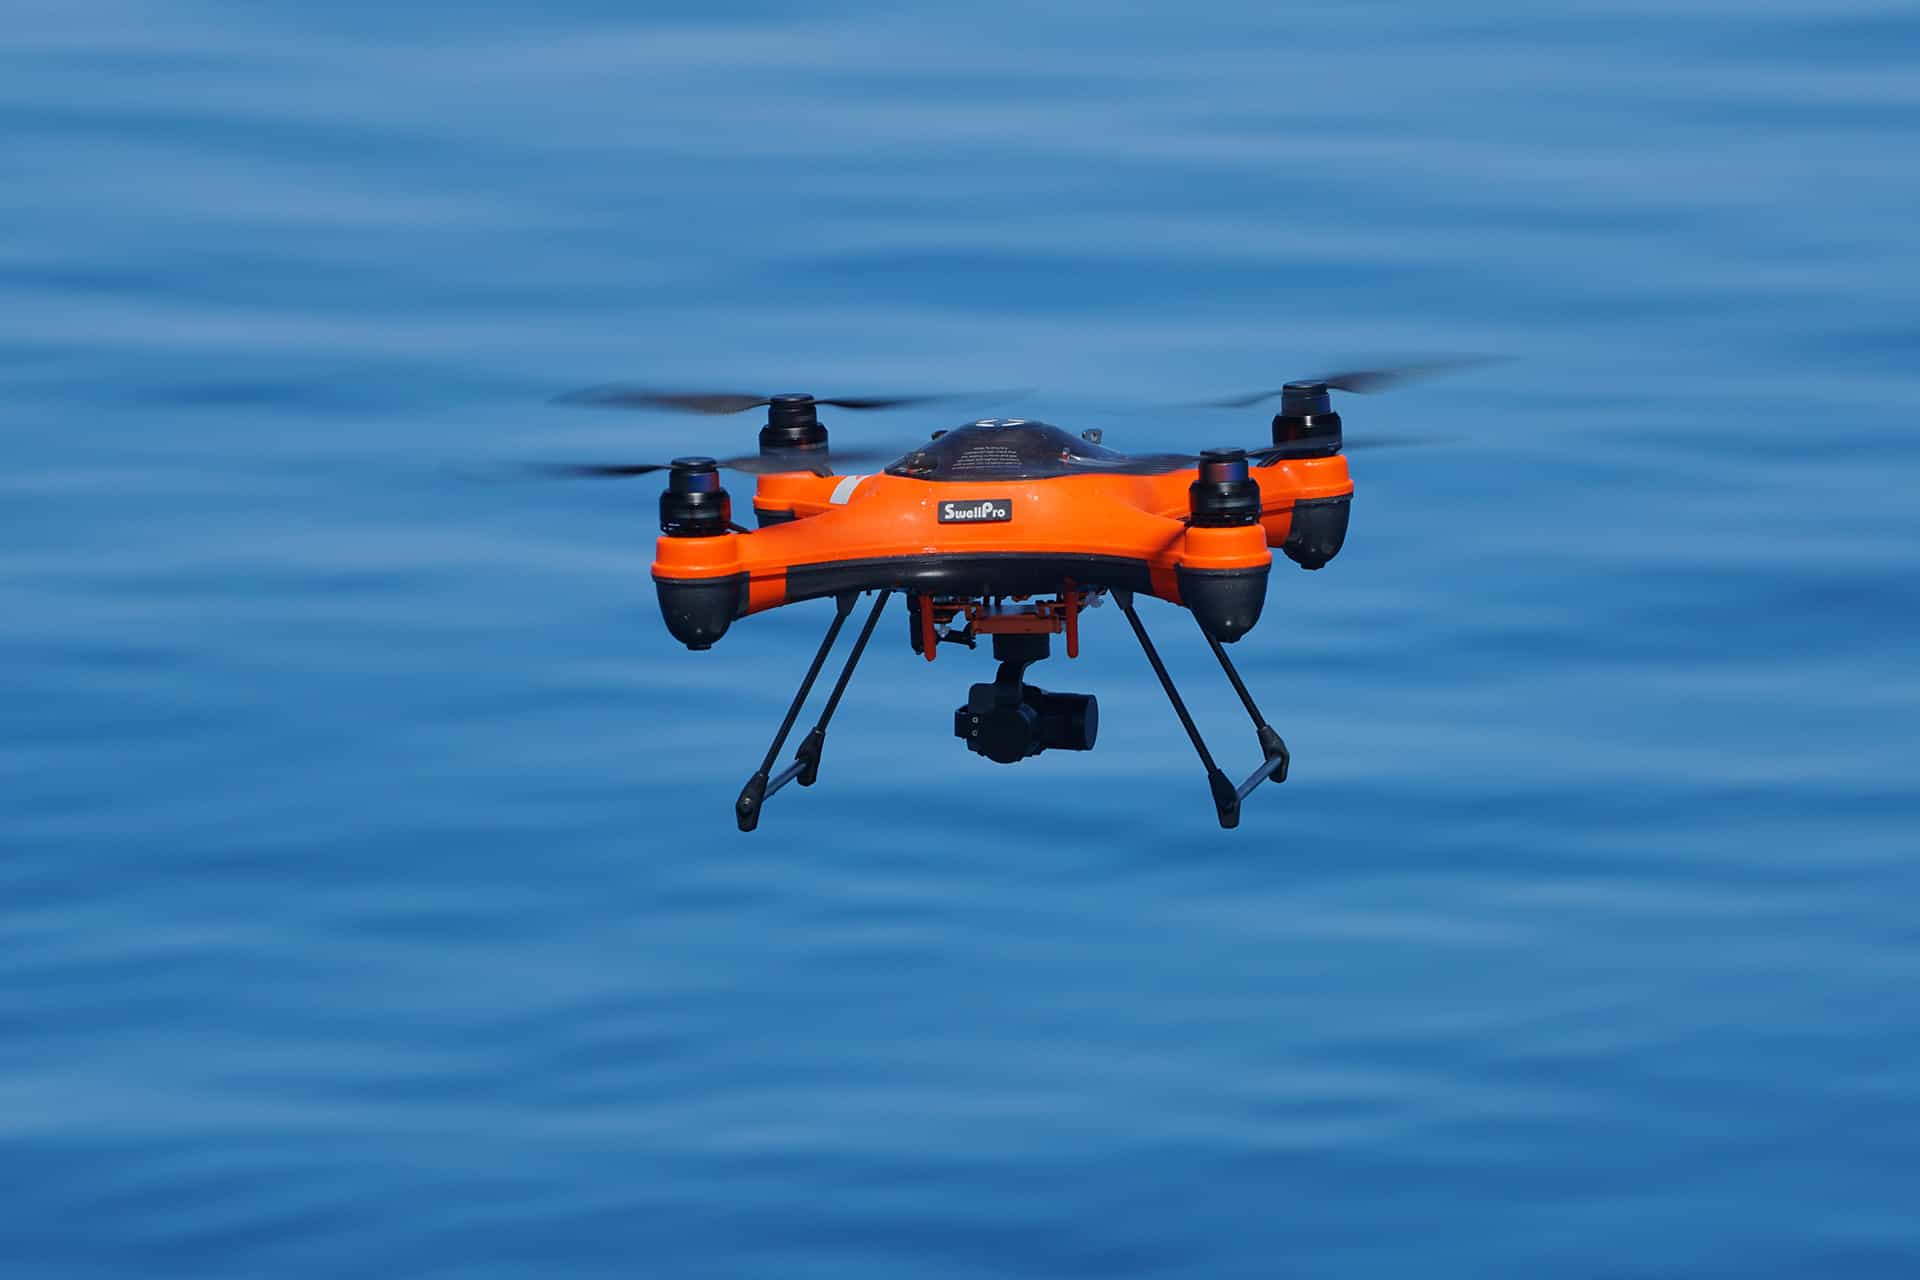 Swellpro Splashdrone 3+ in action